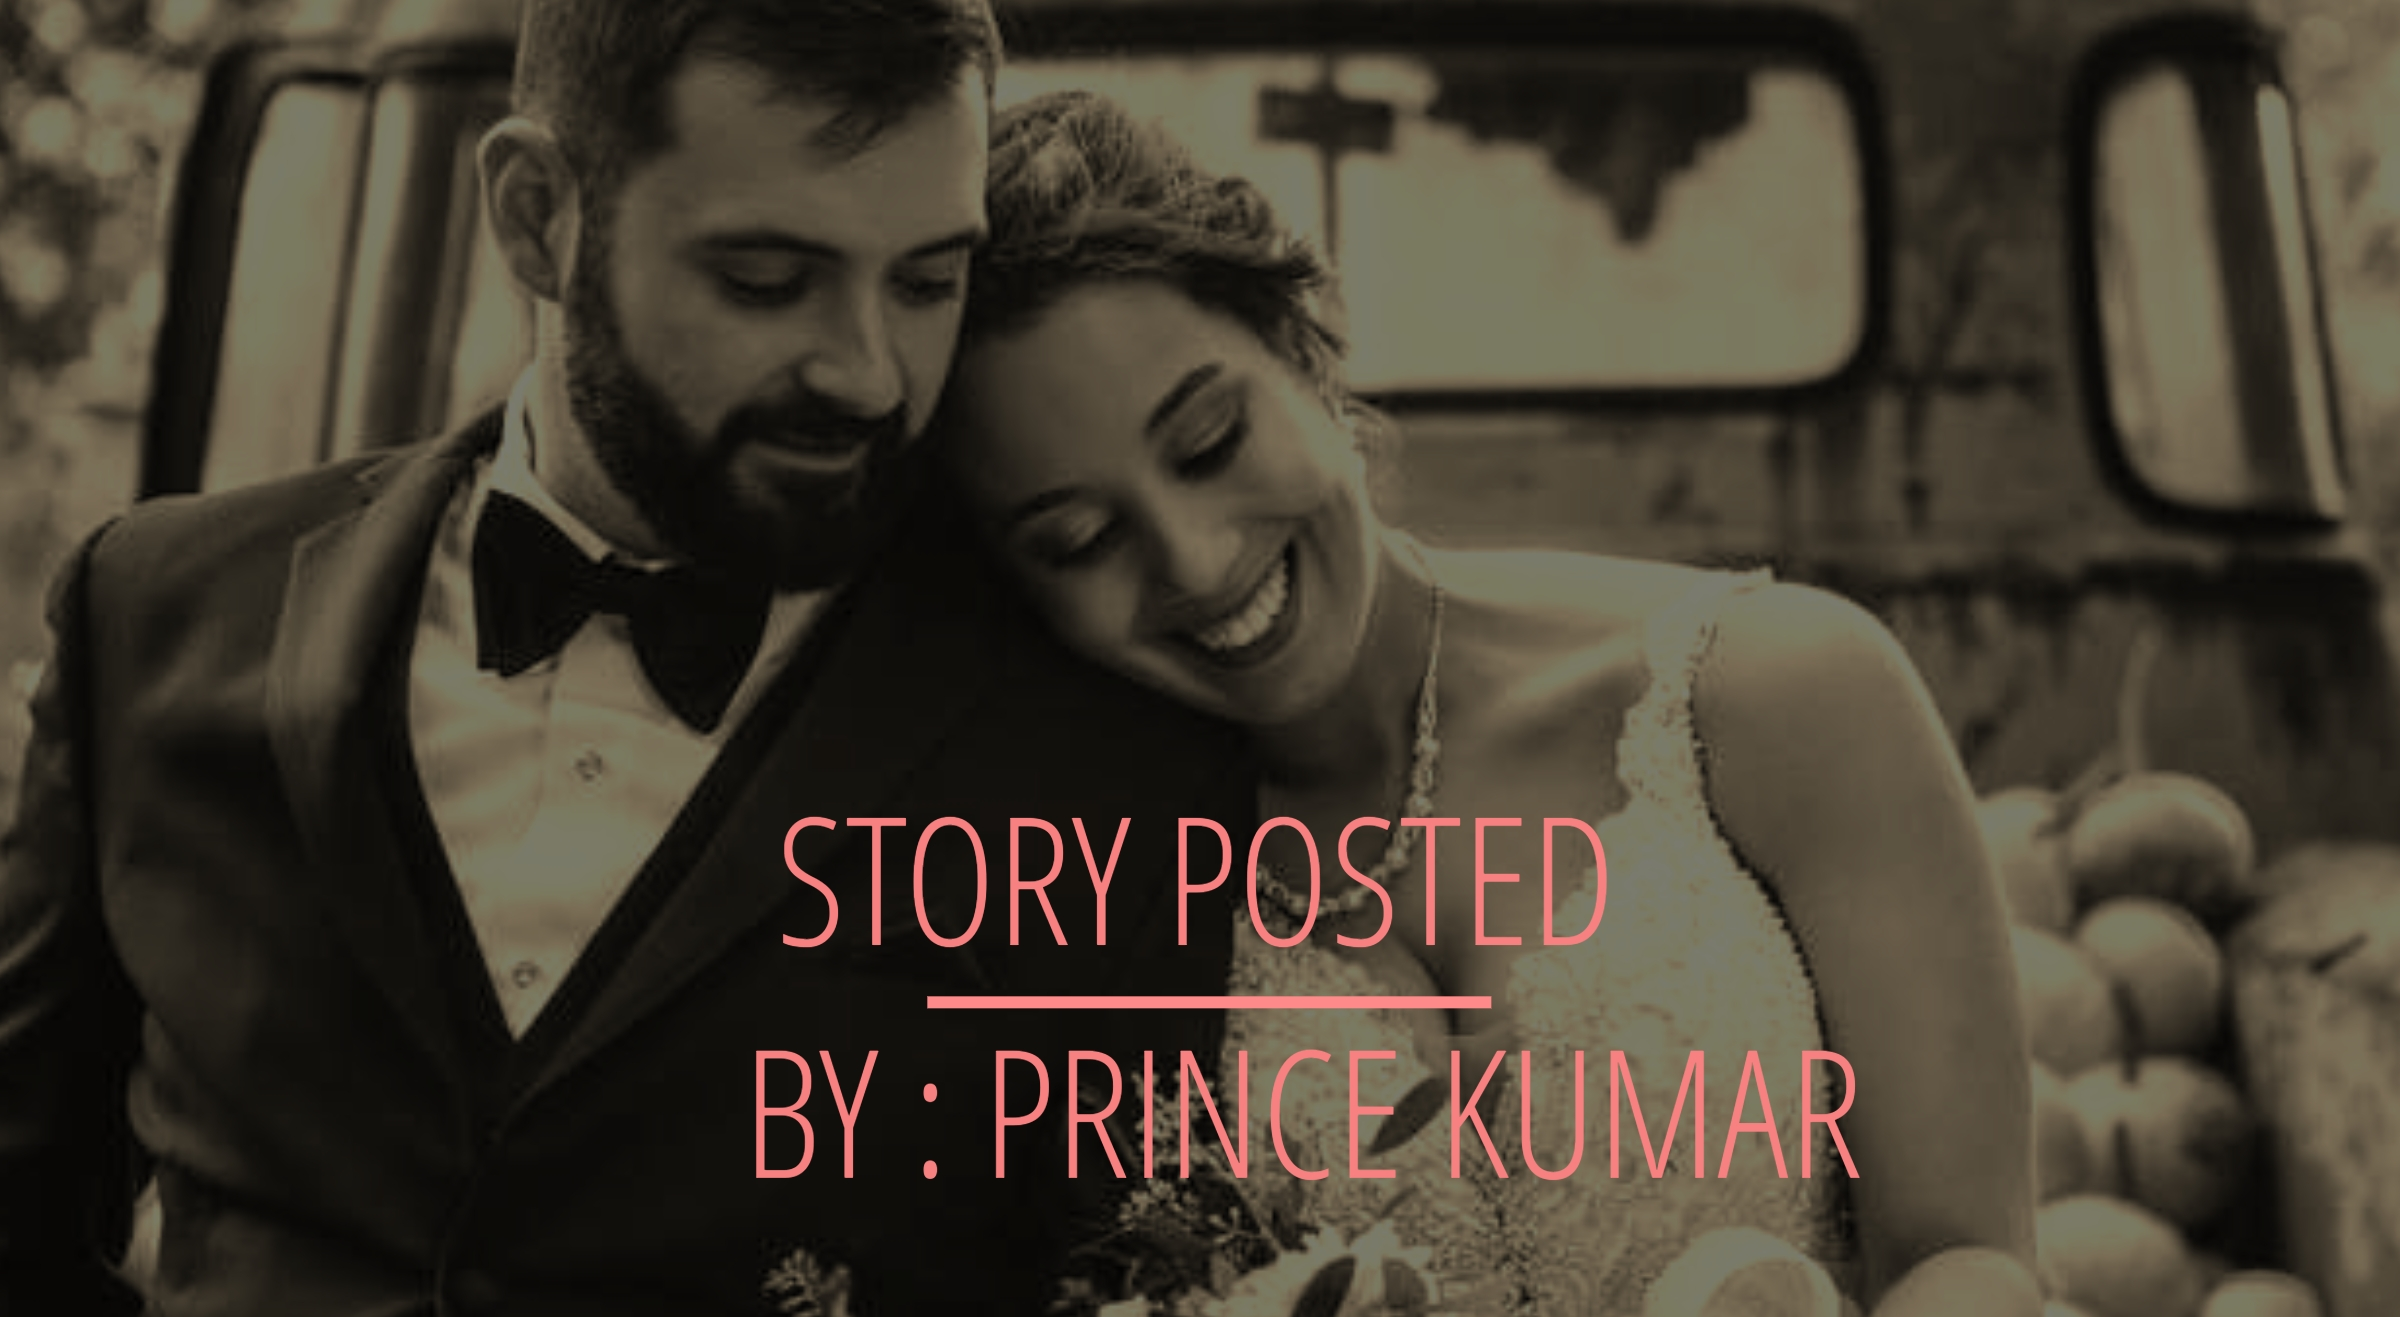 5. STORY POSTED BY PRINCE KUMAR